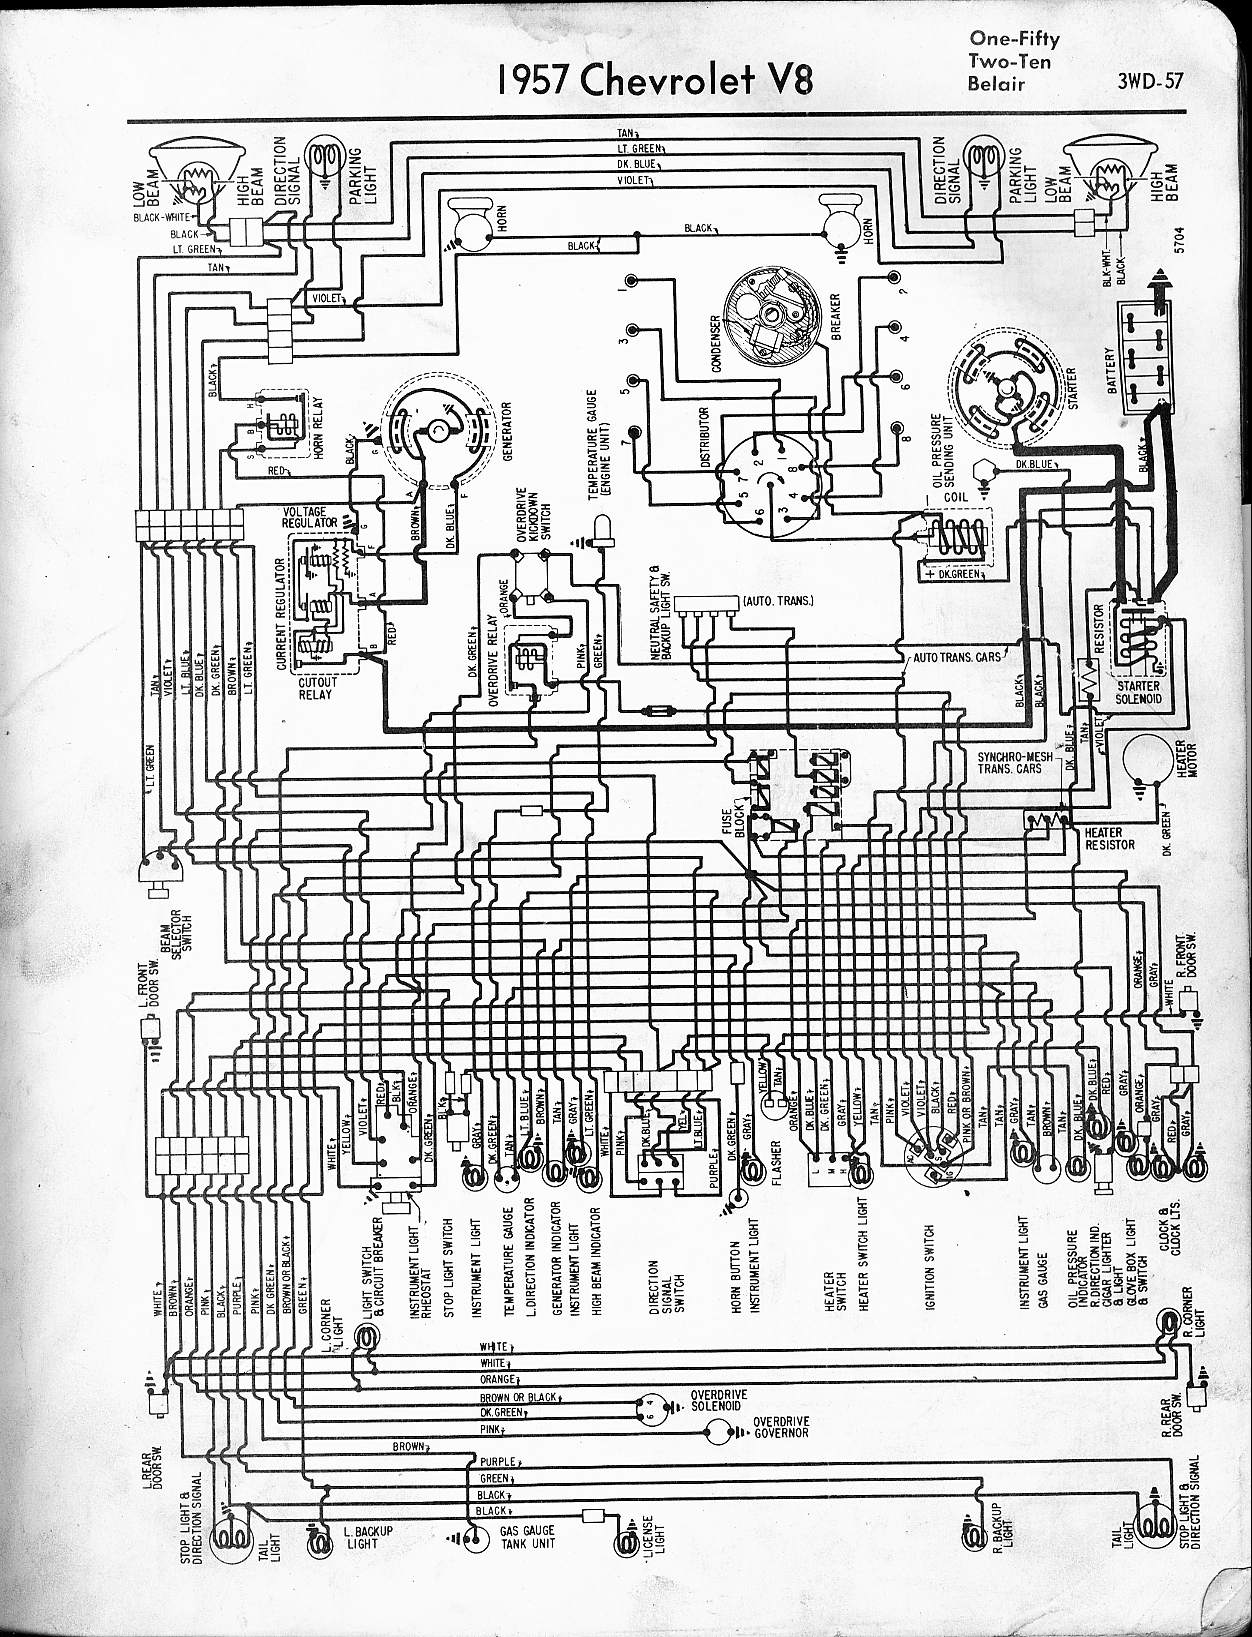 57 chevy ignition wiring diagram wiring diagrams57 65 chevy wiring diagrams 57 chevy electronic ignition wiring diagram 57 chevy ignition wiring diagram